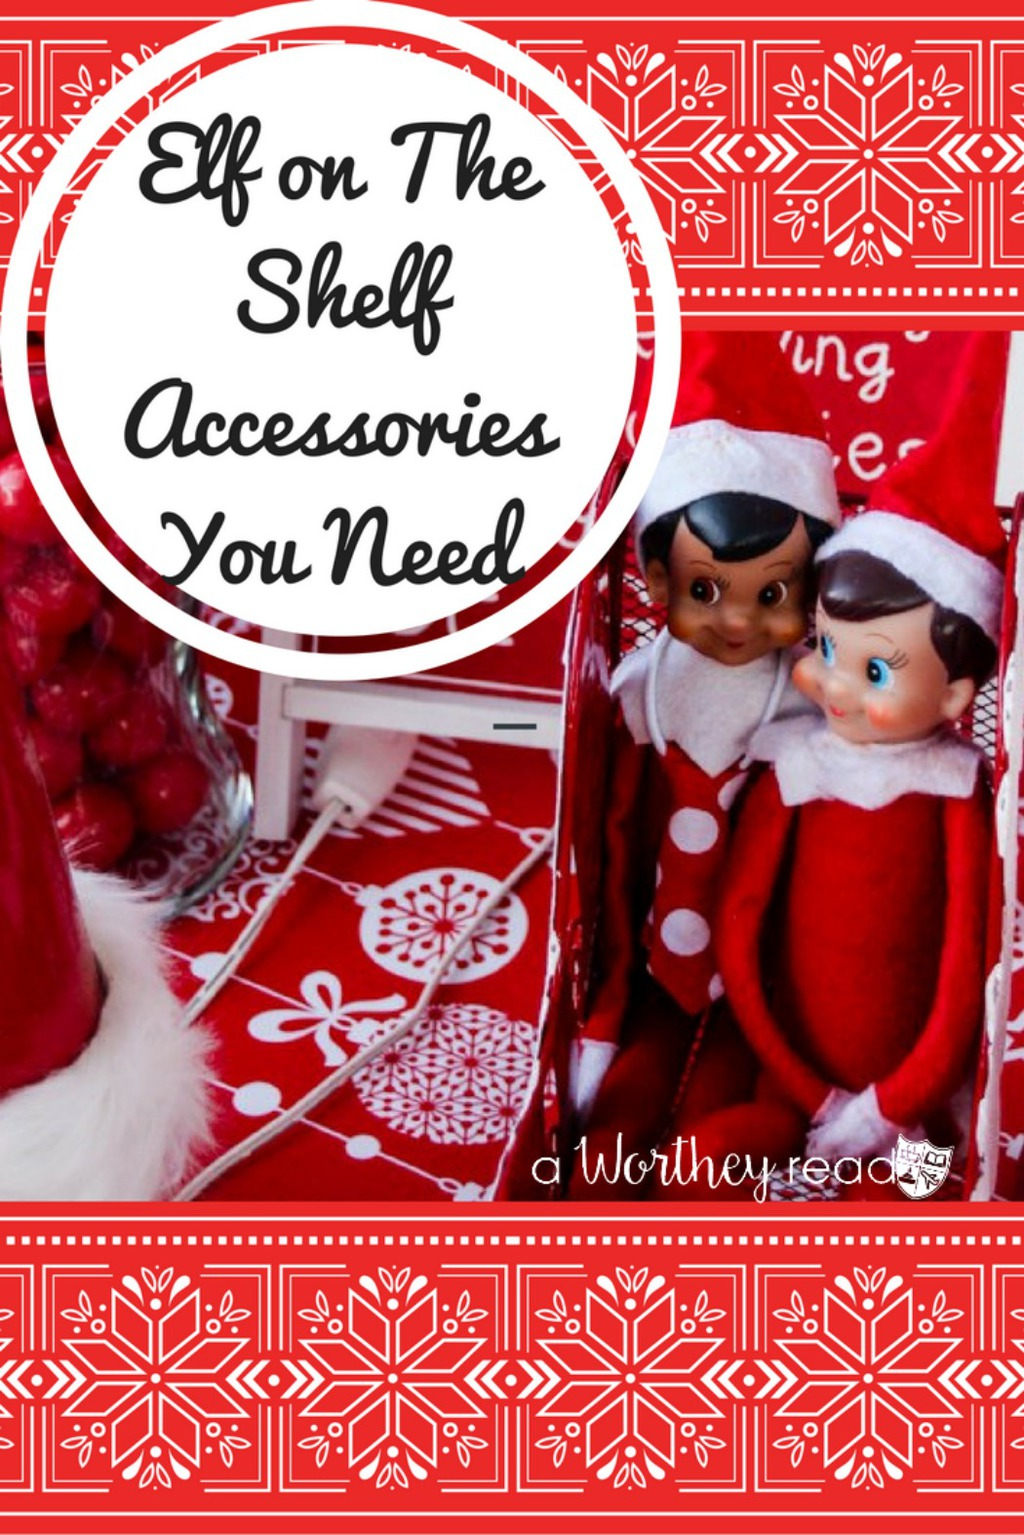 Don't miss buying these Elf On The Shelf Accessories for your kids Elf this Christmas! Tons of fun items to choose from to make your Elf even more fun!